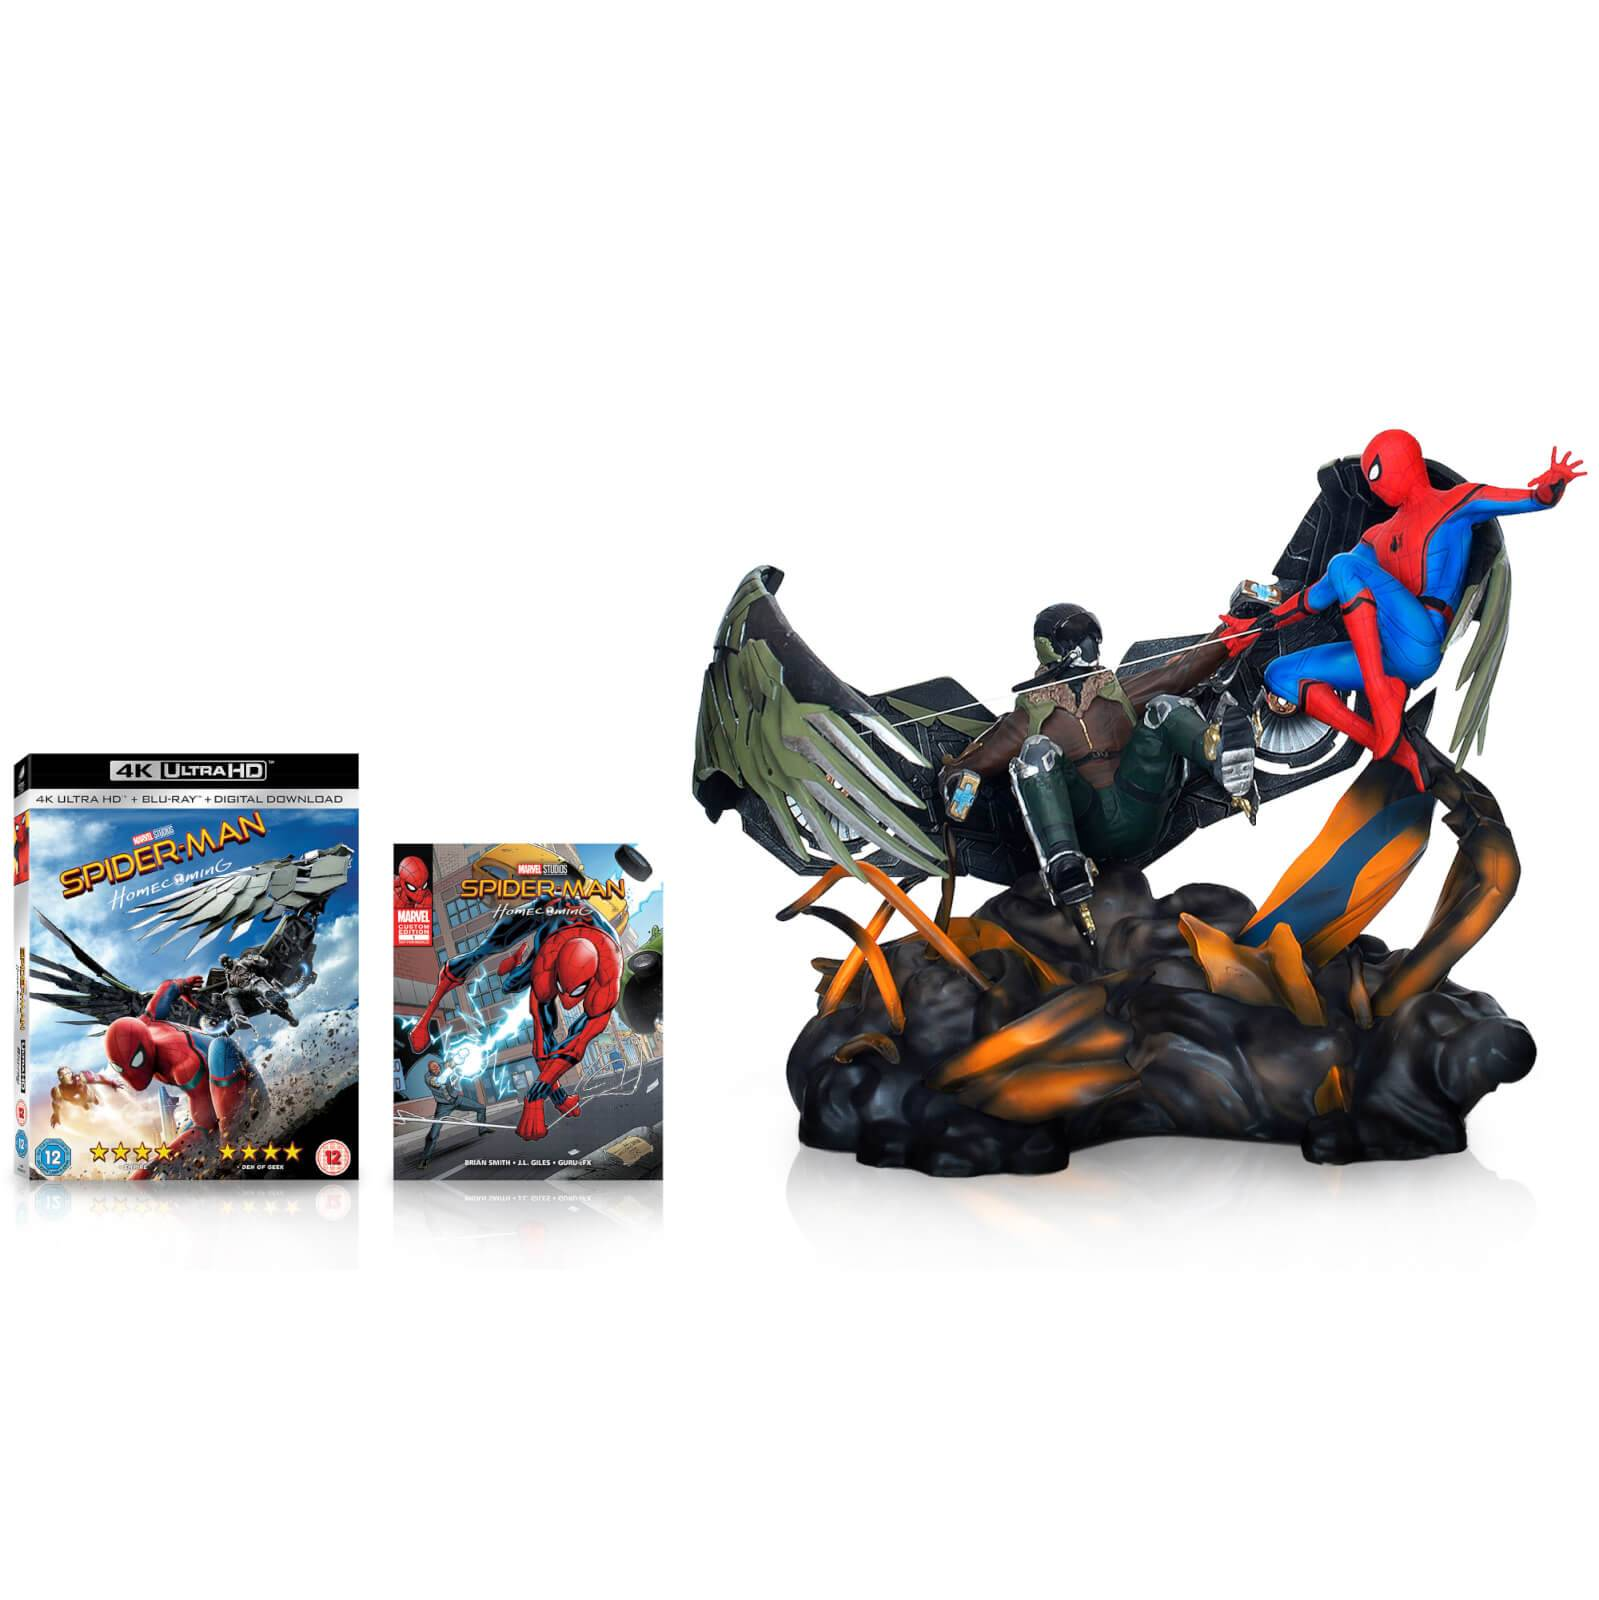 Sony Spider-Man Homecoming - 4K Ultra HD - Figurine + Comic Book